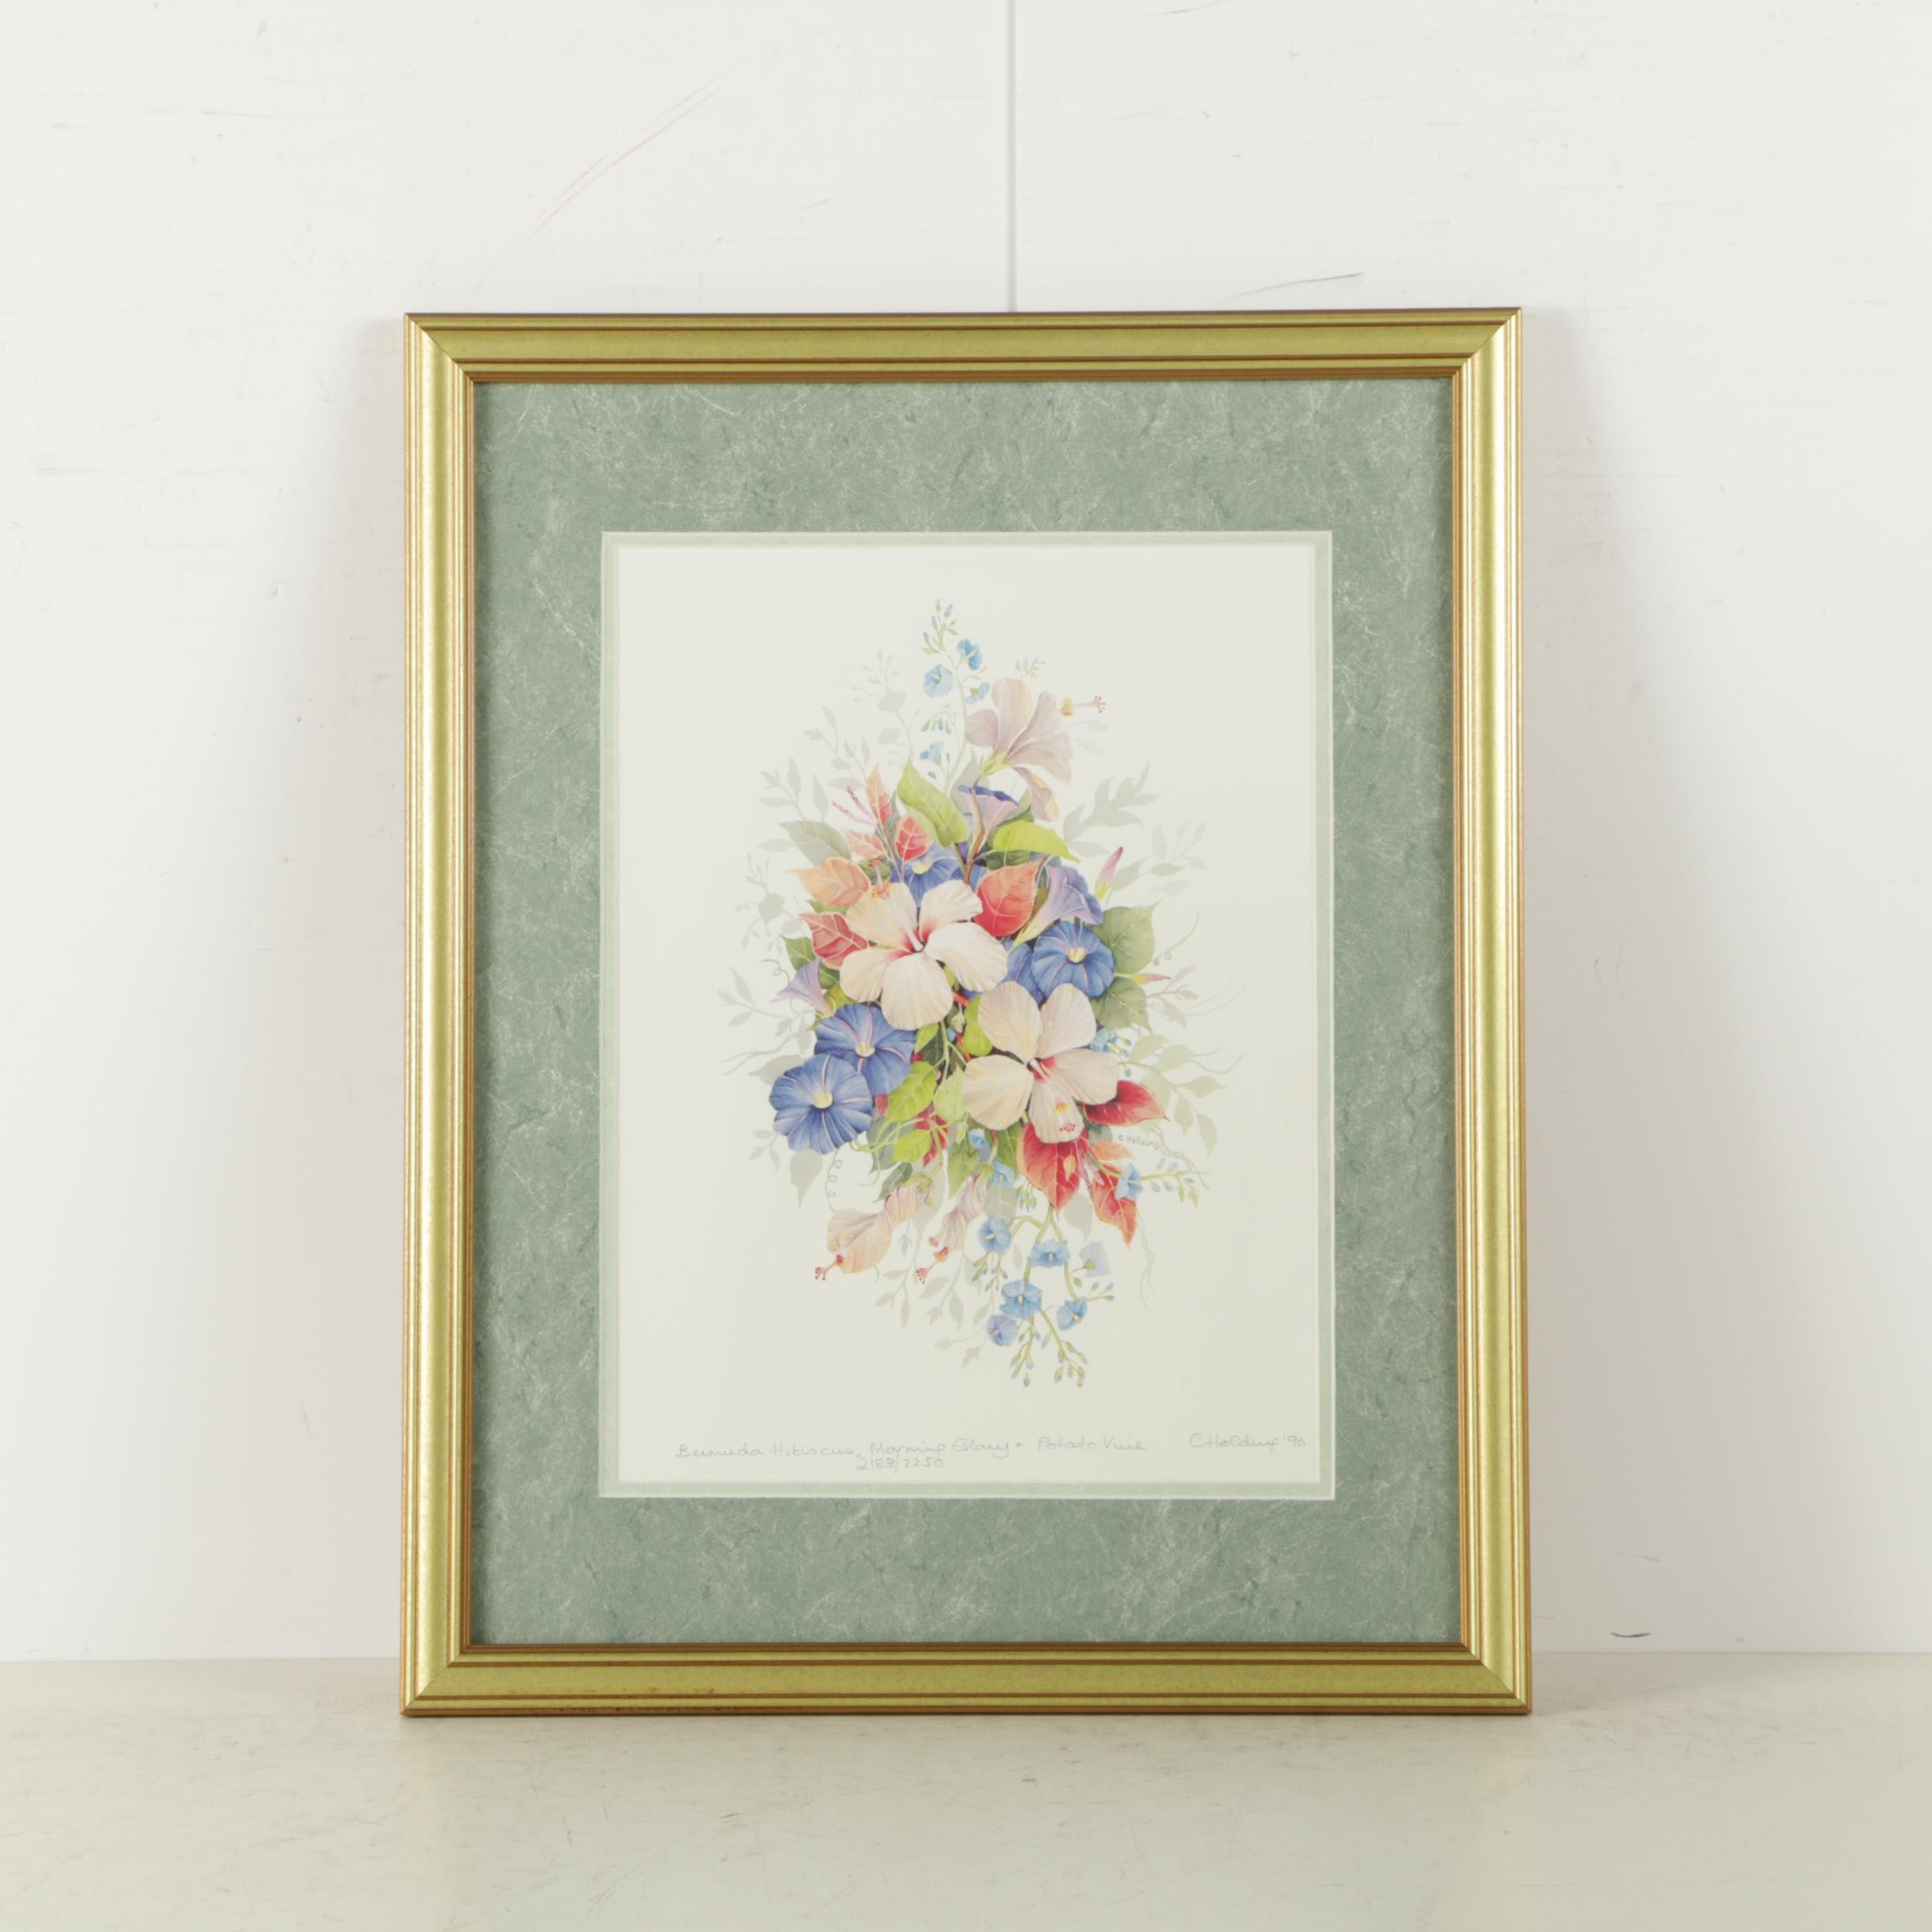 Carole Holding Limited Edition Reproduction Print on Paper of Flowers